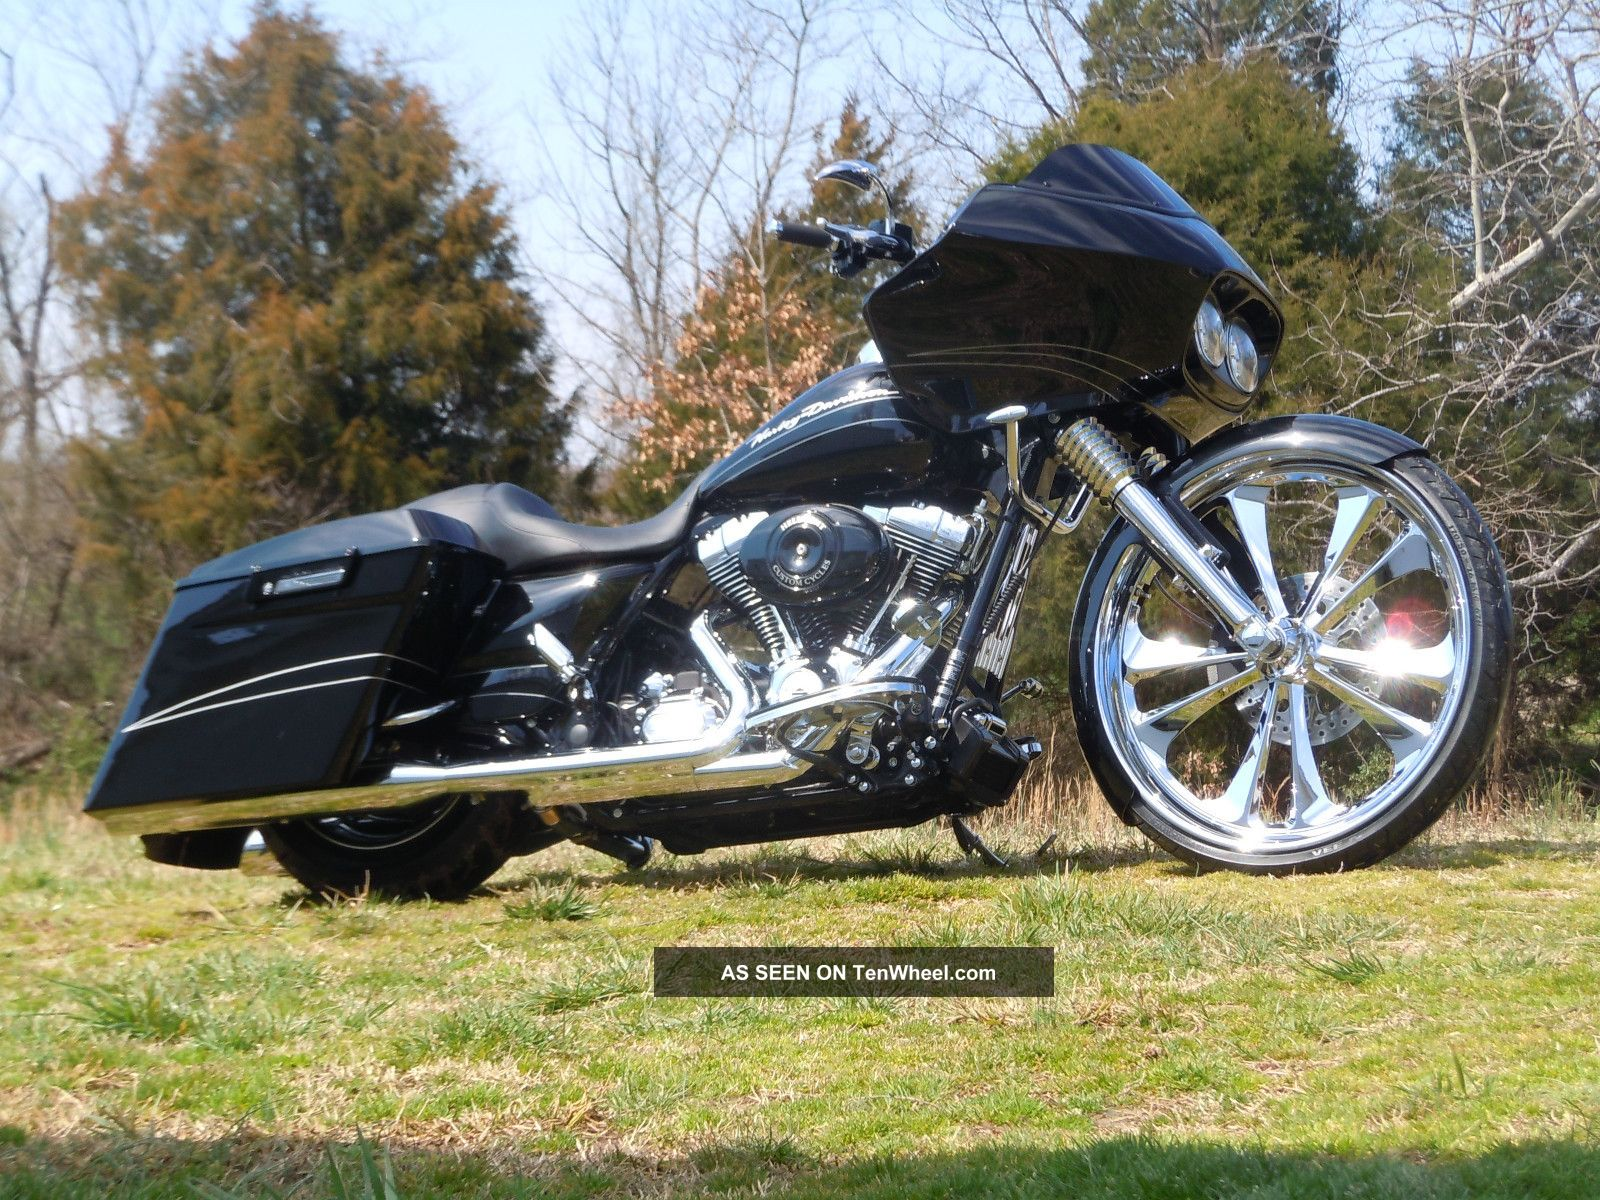 2013 Harley Davidson Road Glide Touring photo